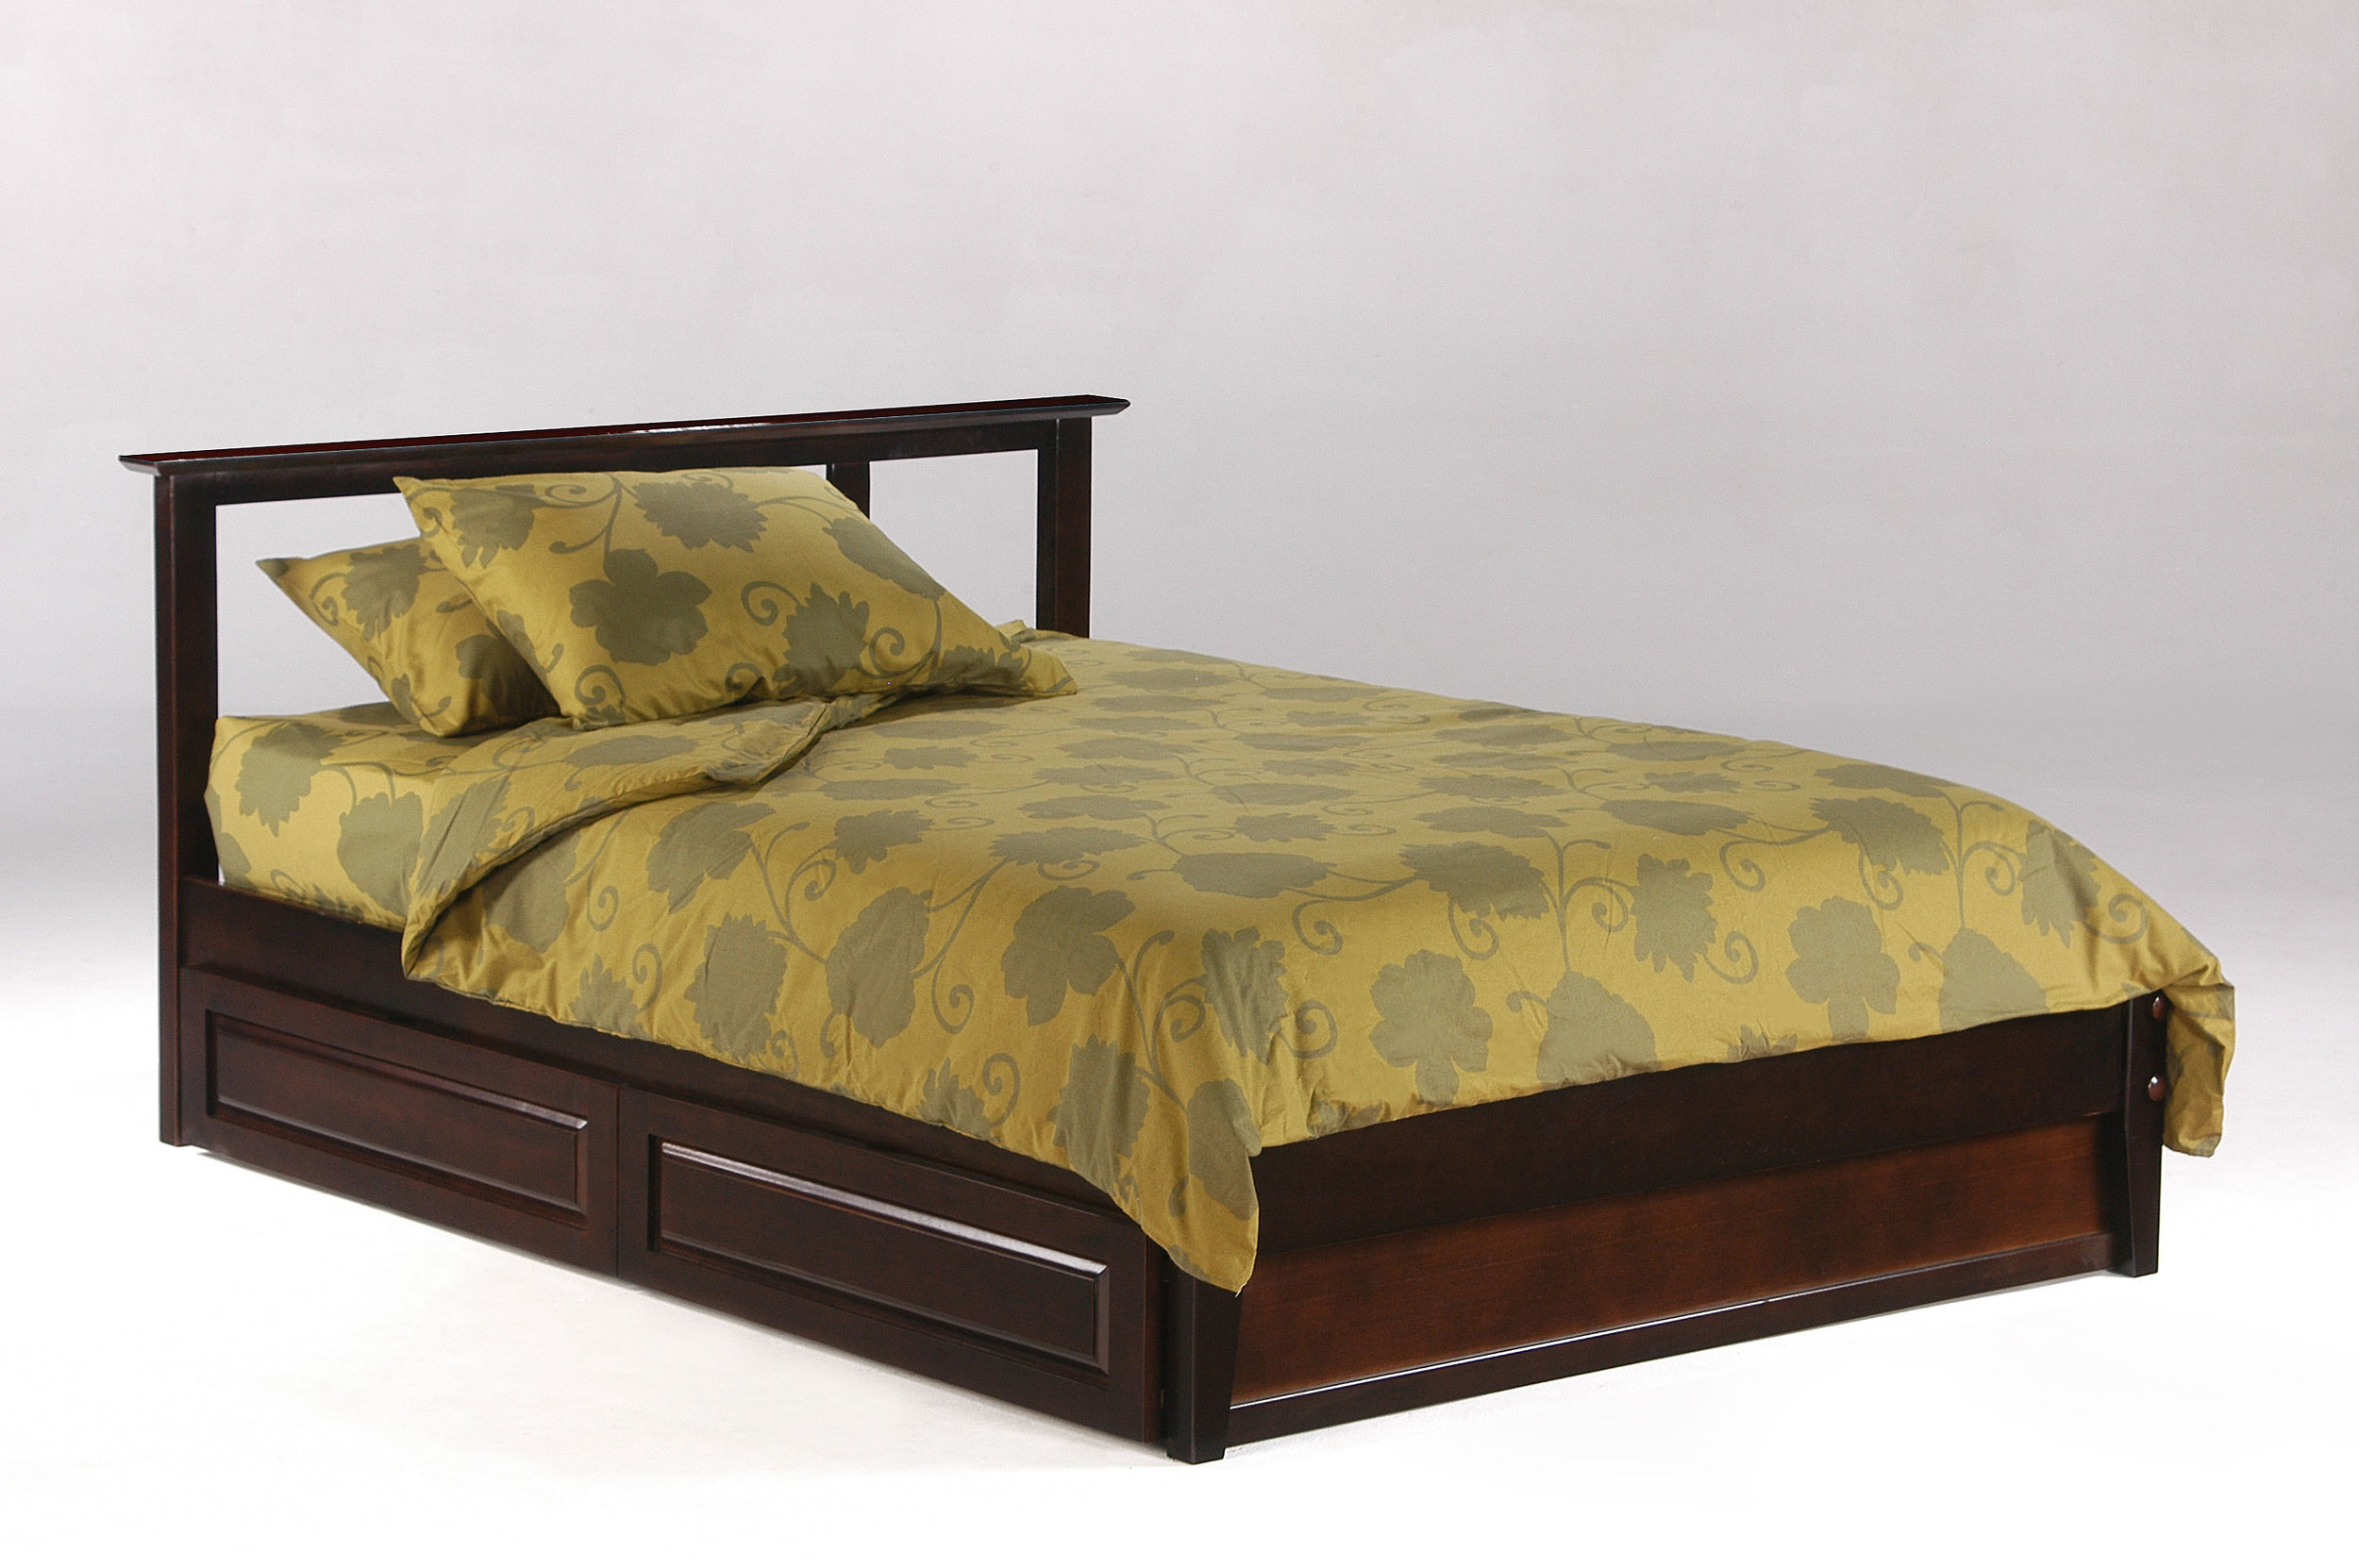 Platform Beds with storage make sense for small bedrooms